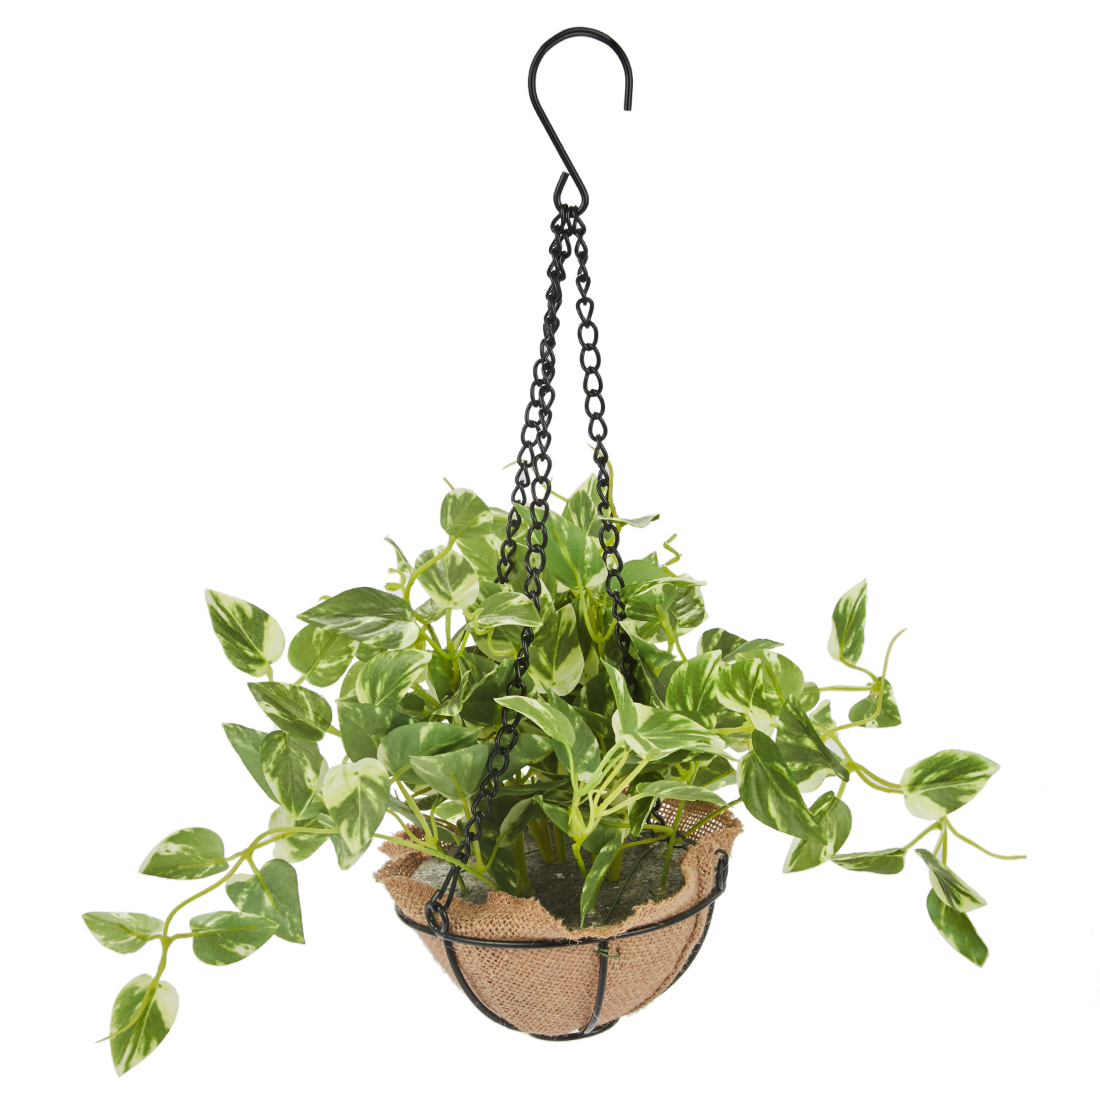 Sage Hanging Pothos Plant 29 Cm Artificial Plants in Green Colour by Living Essence